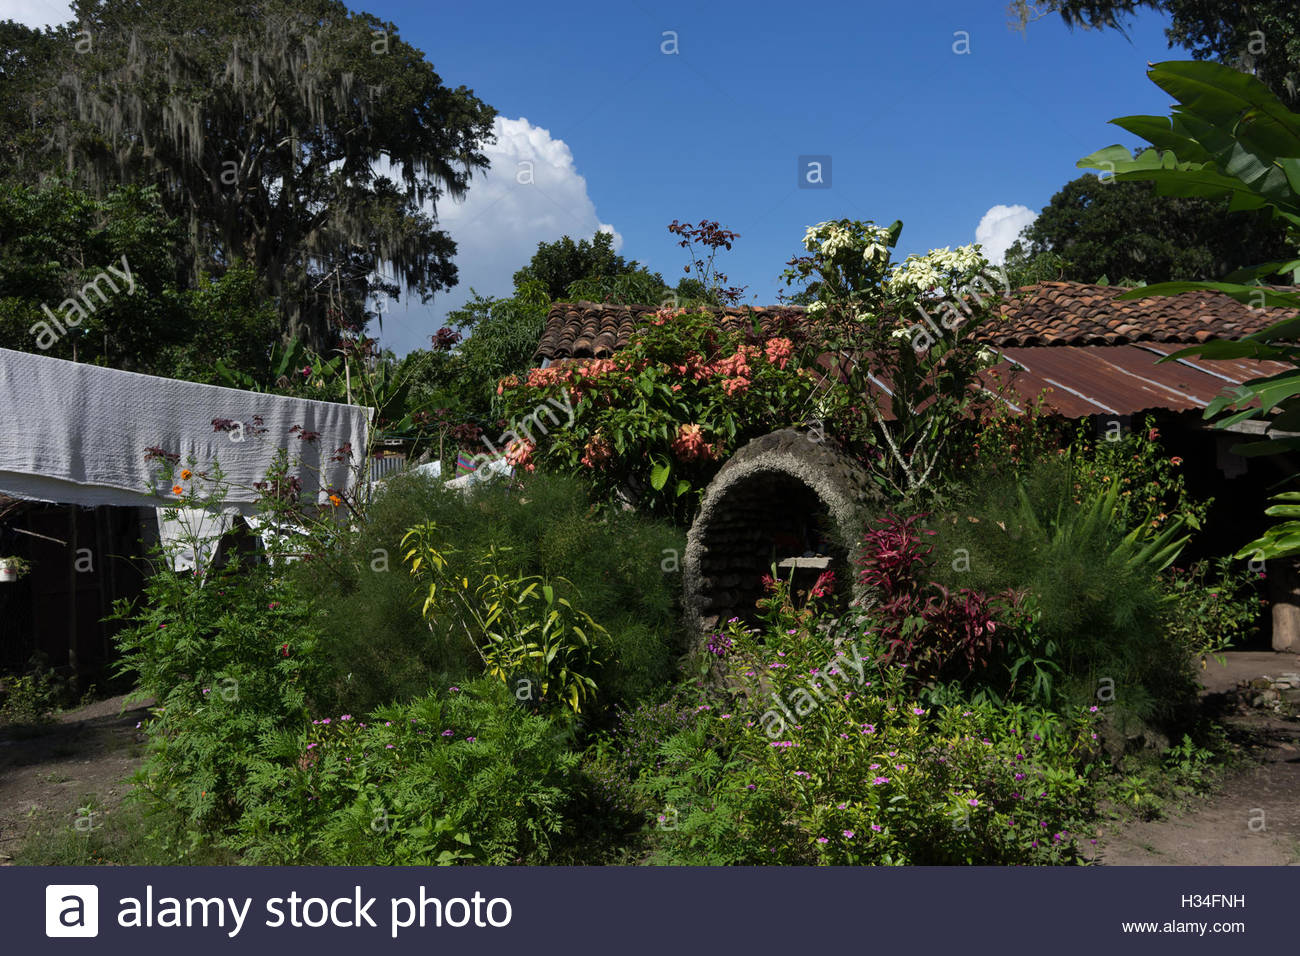 Nicaraguan campo house surrounded by flowers which is typical of country houses.  Clothes hanging on the line is - Stock Image